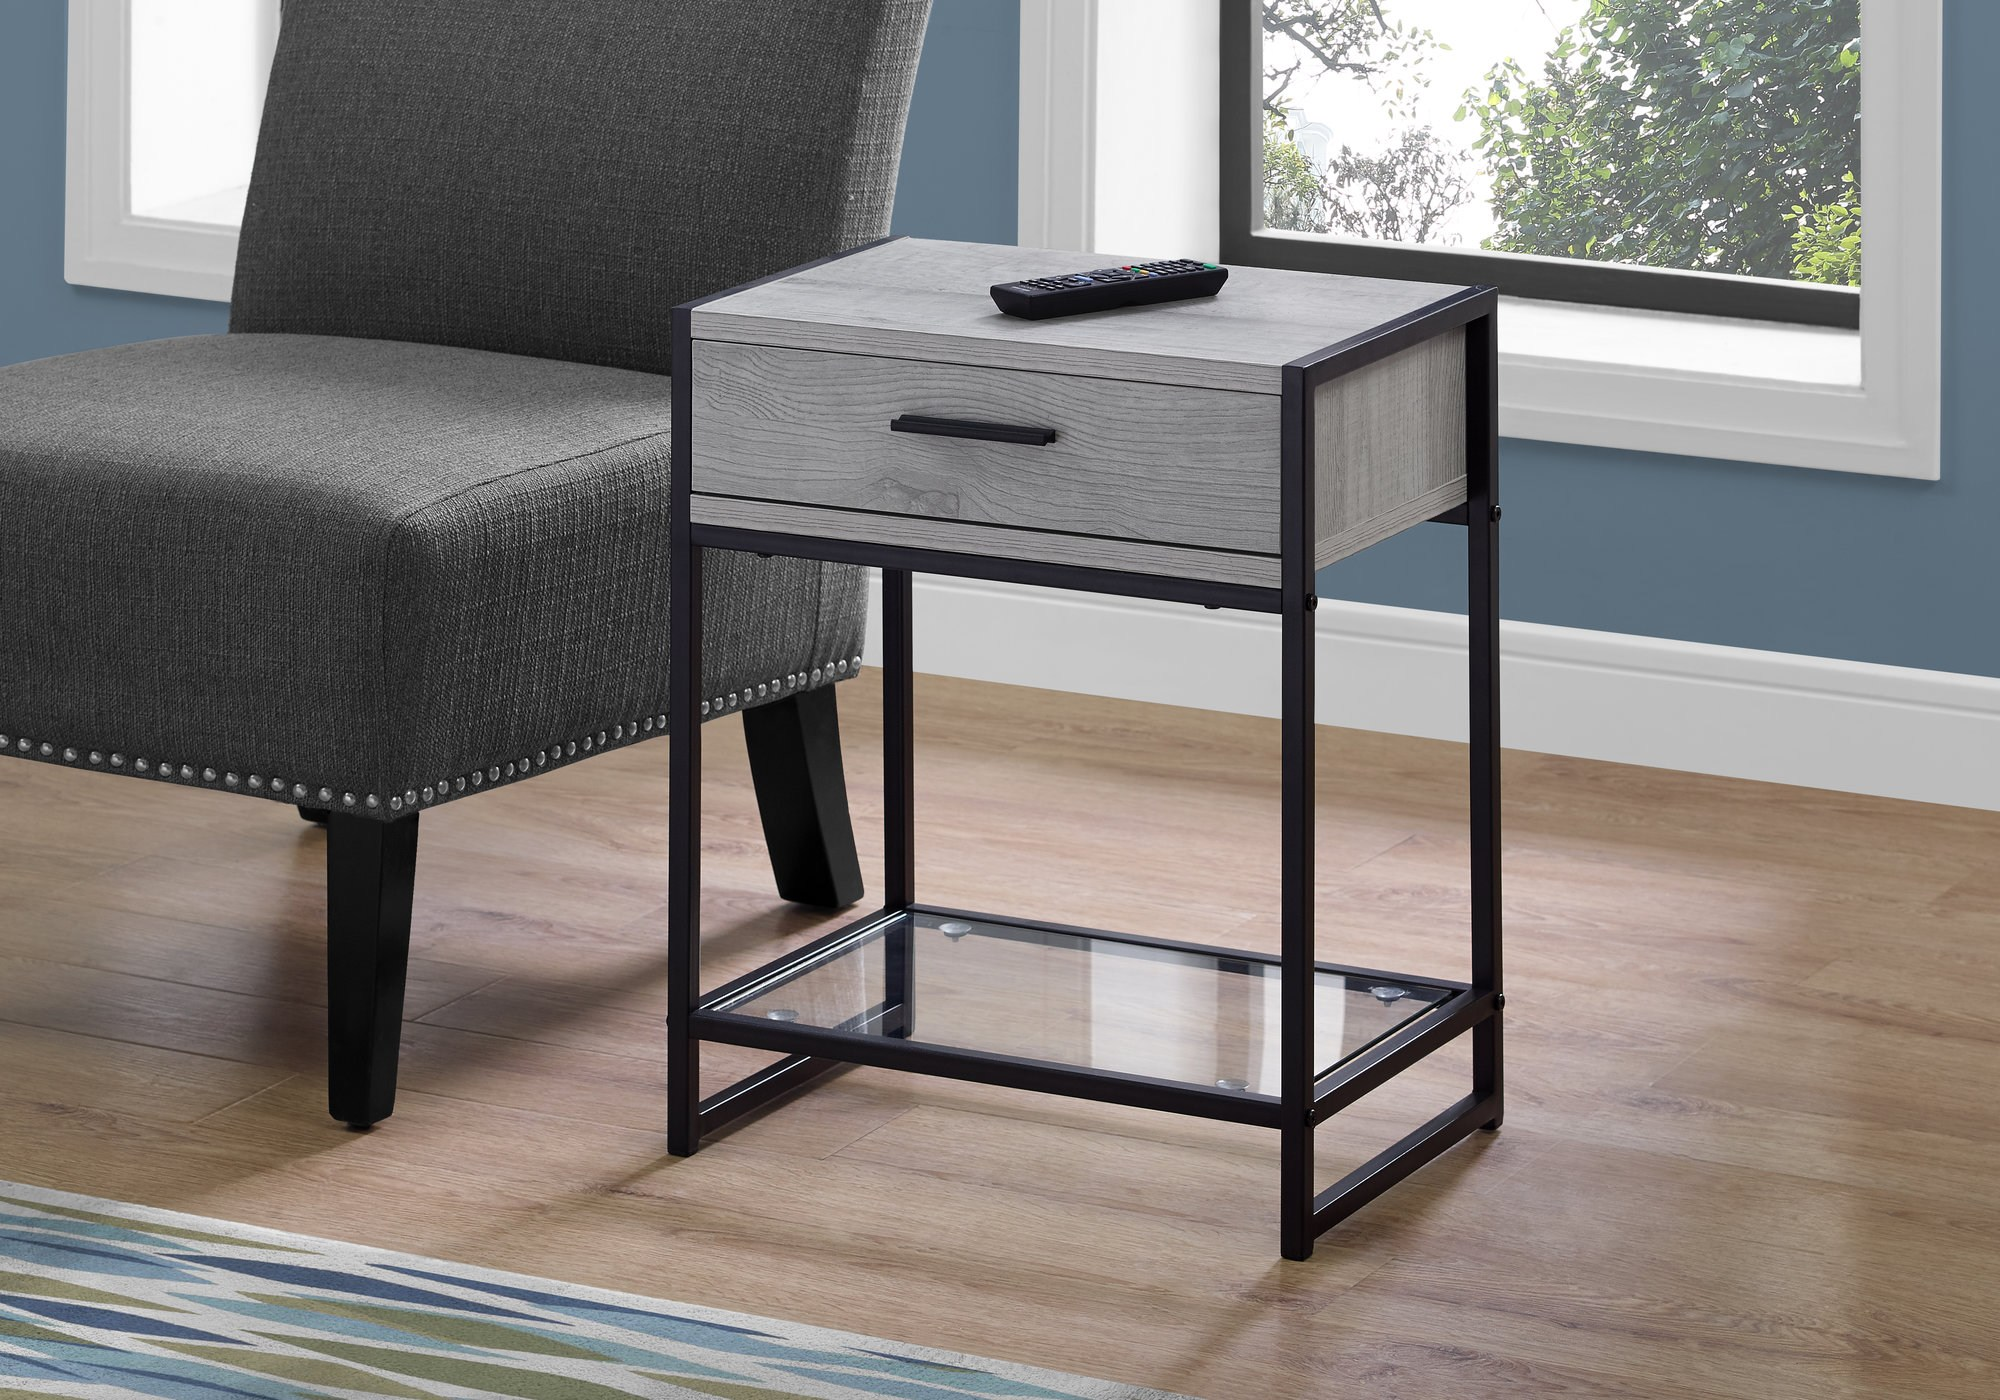 bandiwood gray accent table tables colors wood black marble dining set linen covers coffee side seaside decor barnwood ideas champagne mirrored furniture long nightstand patio